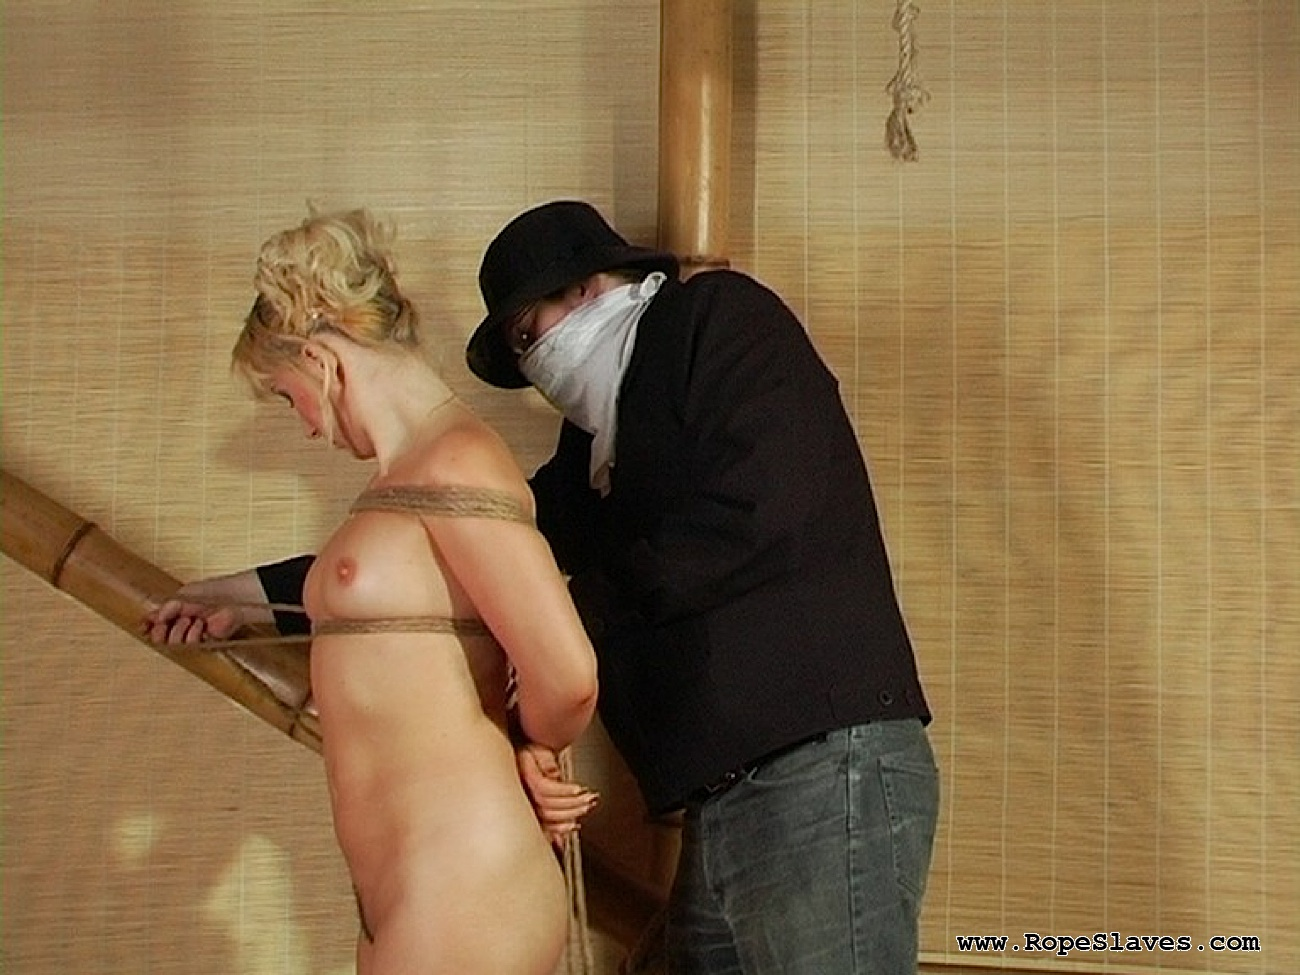 03 Submissive Sex Slave Inspection - Obedient Blond Bound